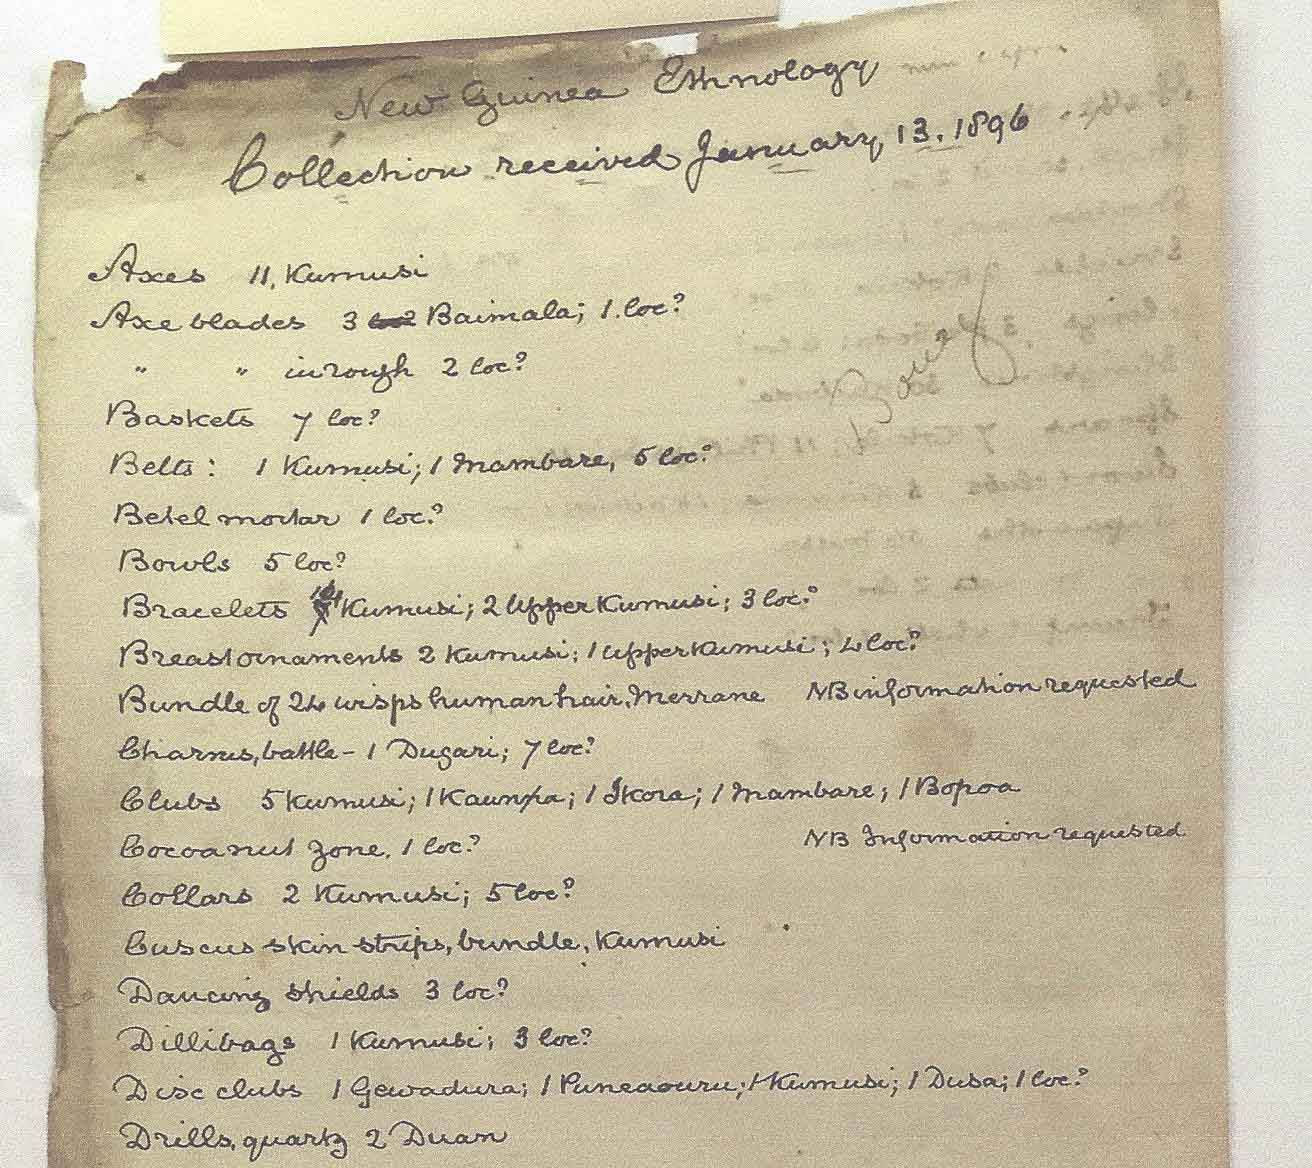 Charles de Vis list of contents of Transfer 55.